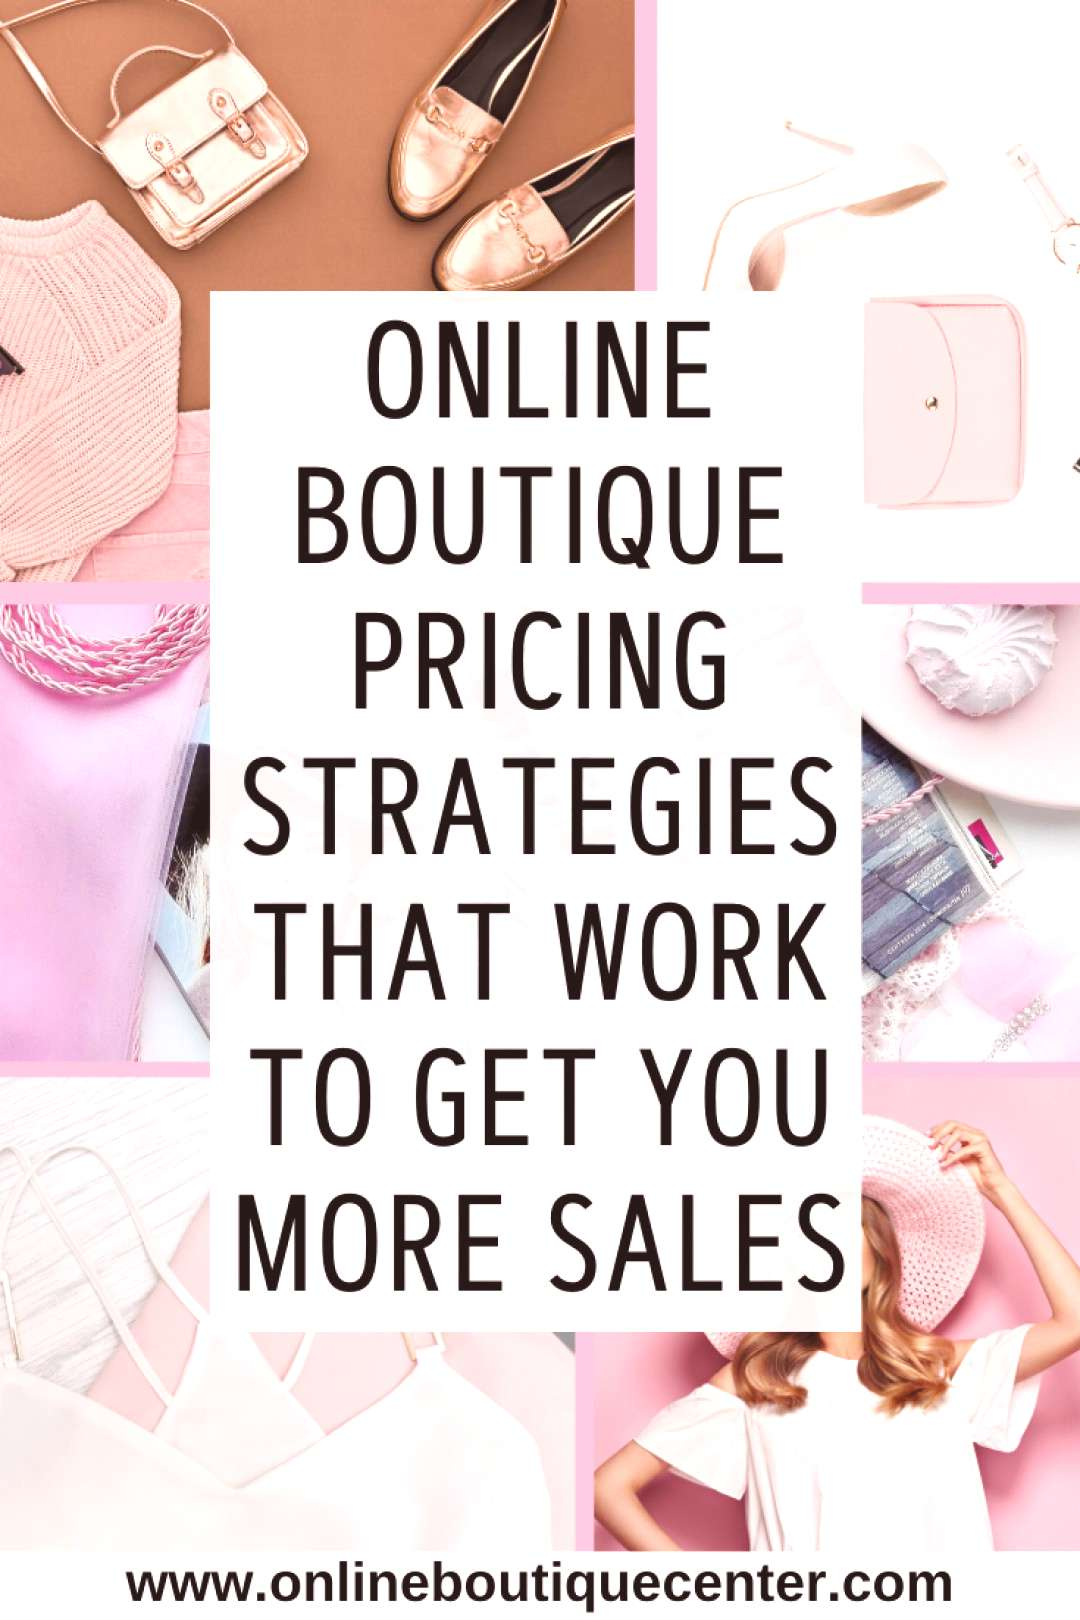 Online Boutique Pricing Strategies that Get You More Sales There are several ways to master pricing